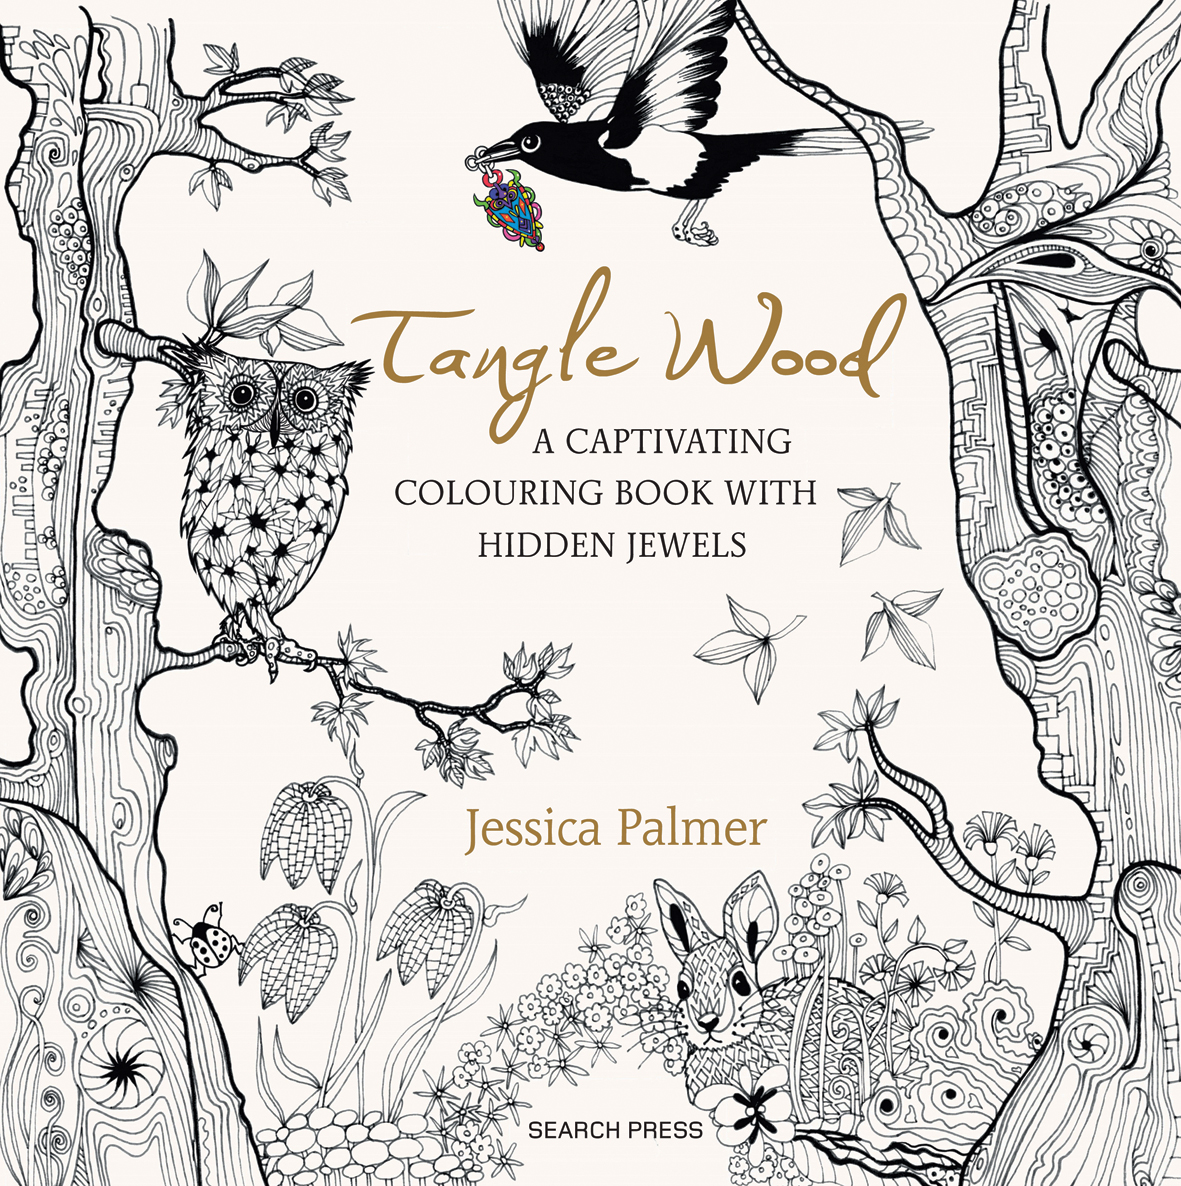 Watercolor books by search press - Tangle Wood